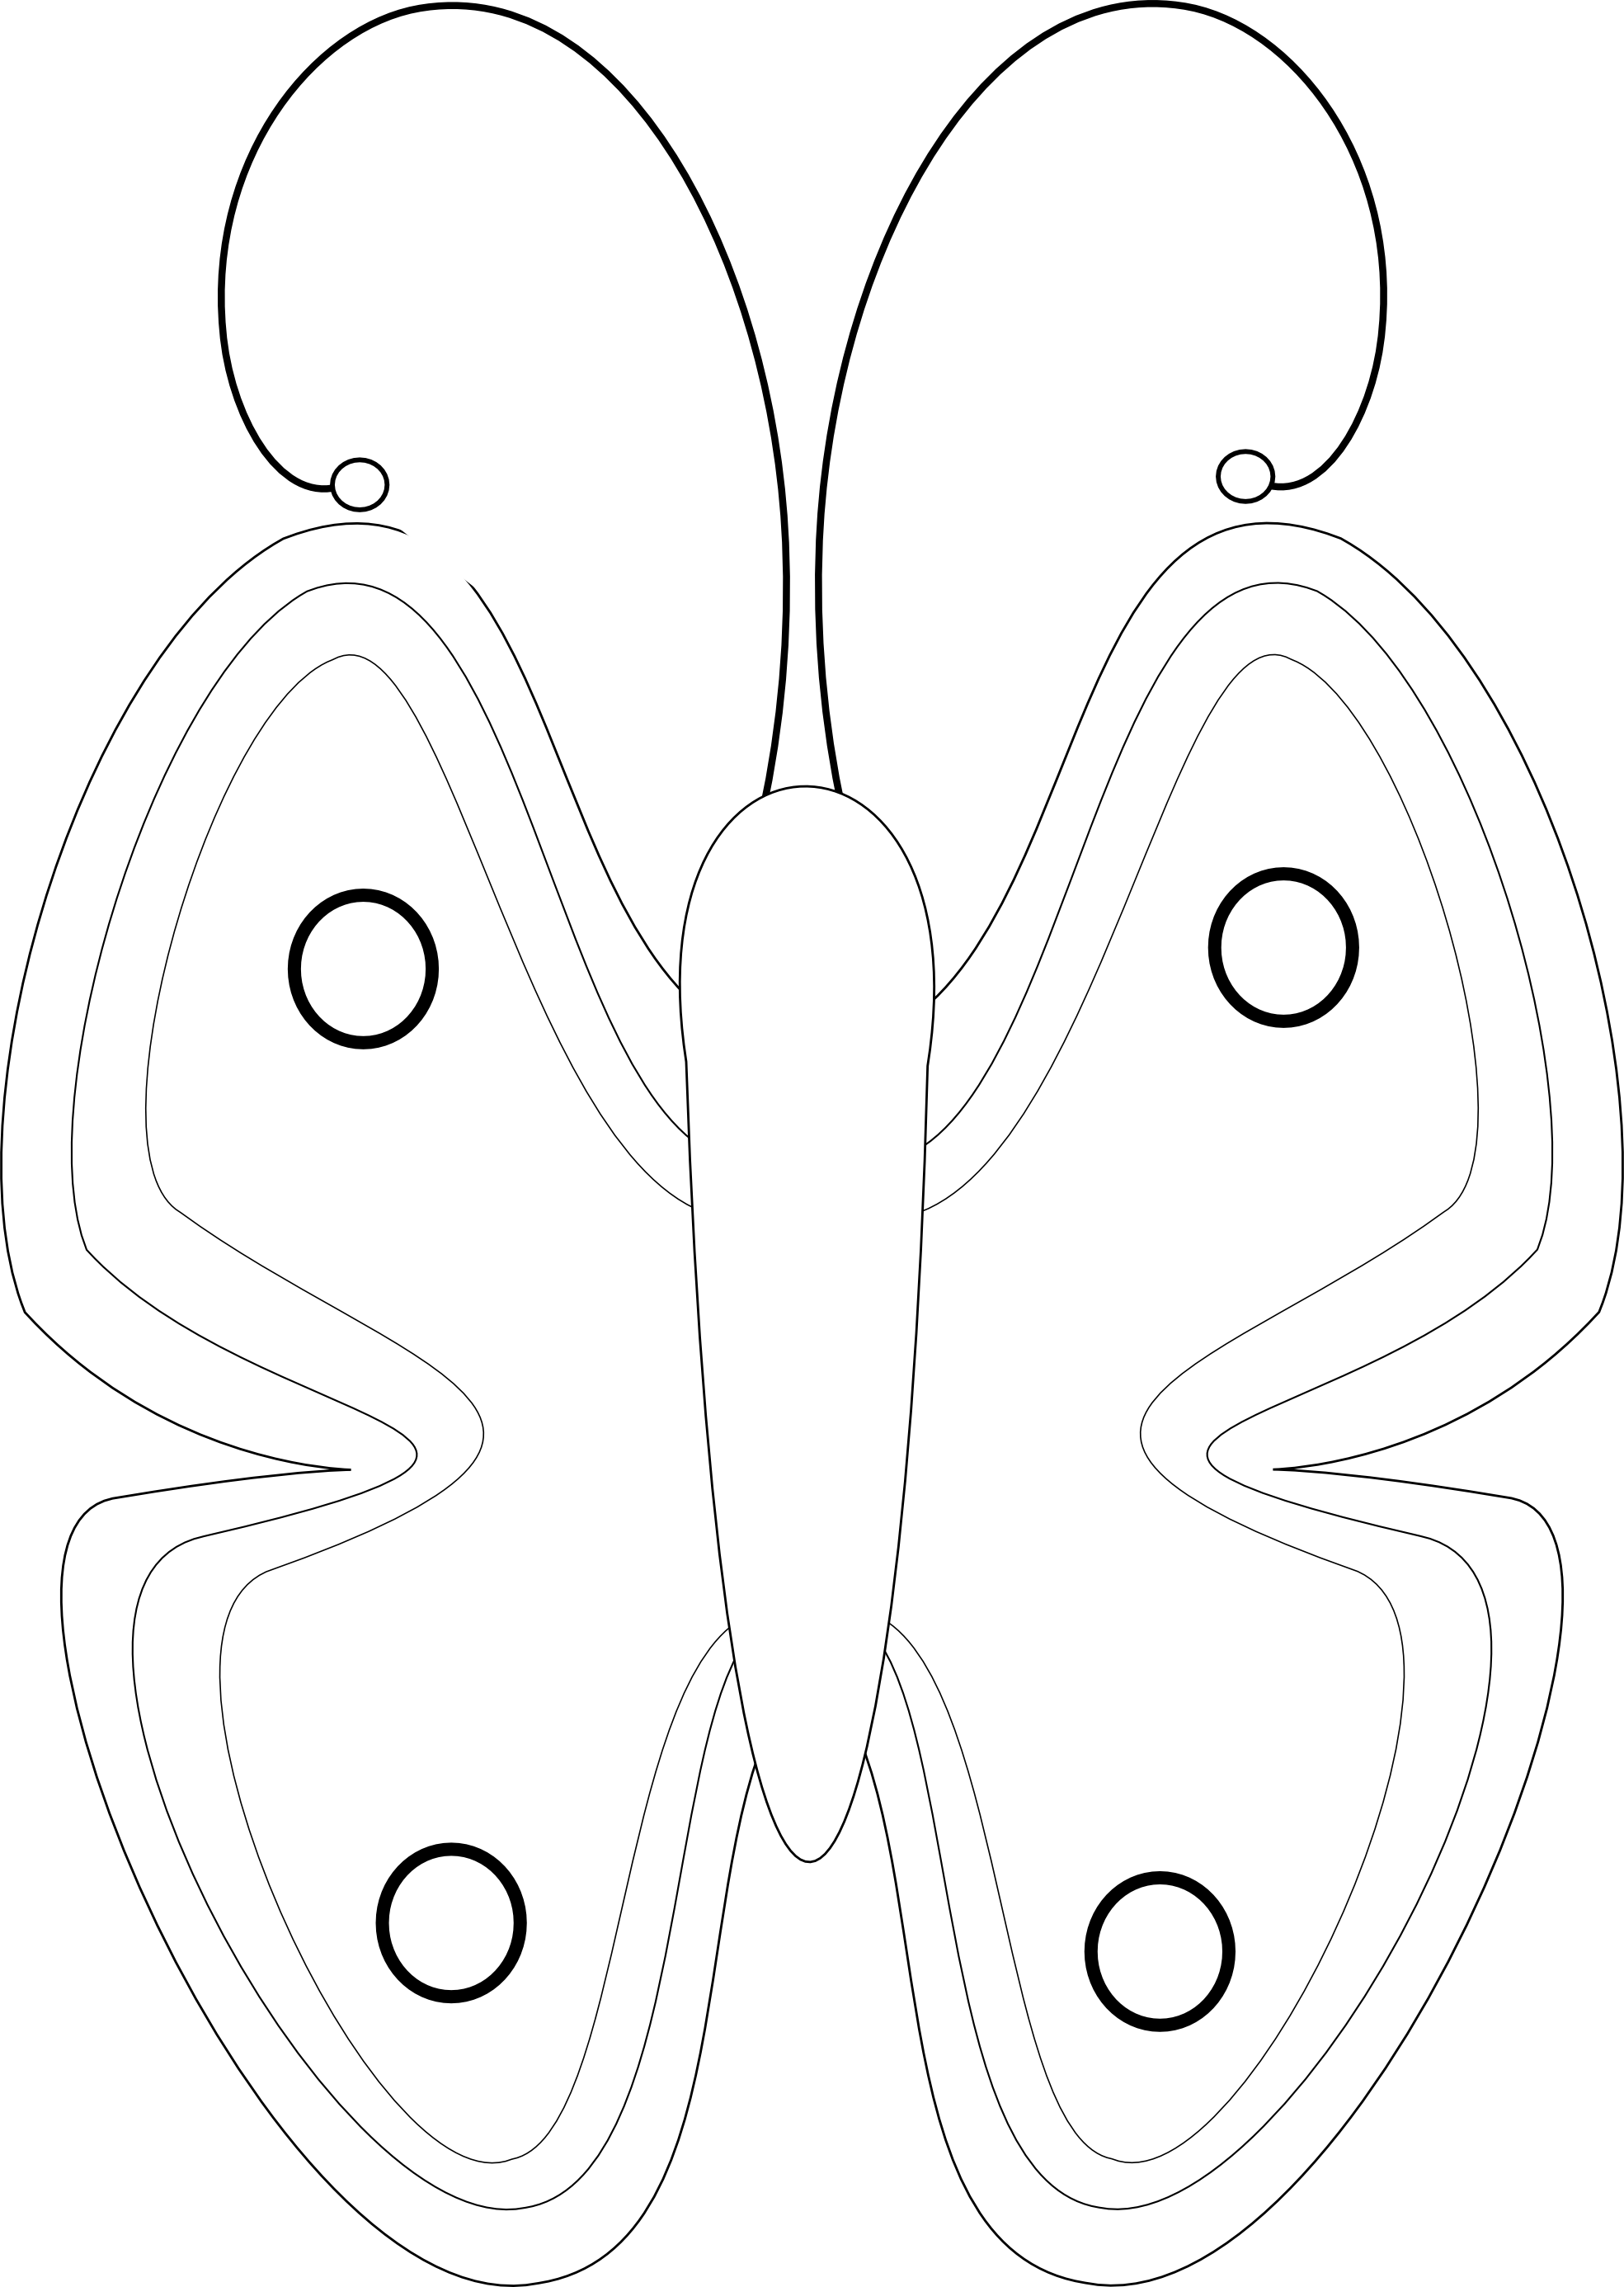 Line Art Using Illustrator : Butterfly net drawing clipart panda free images